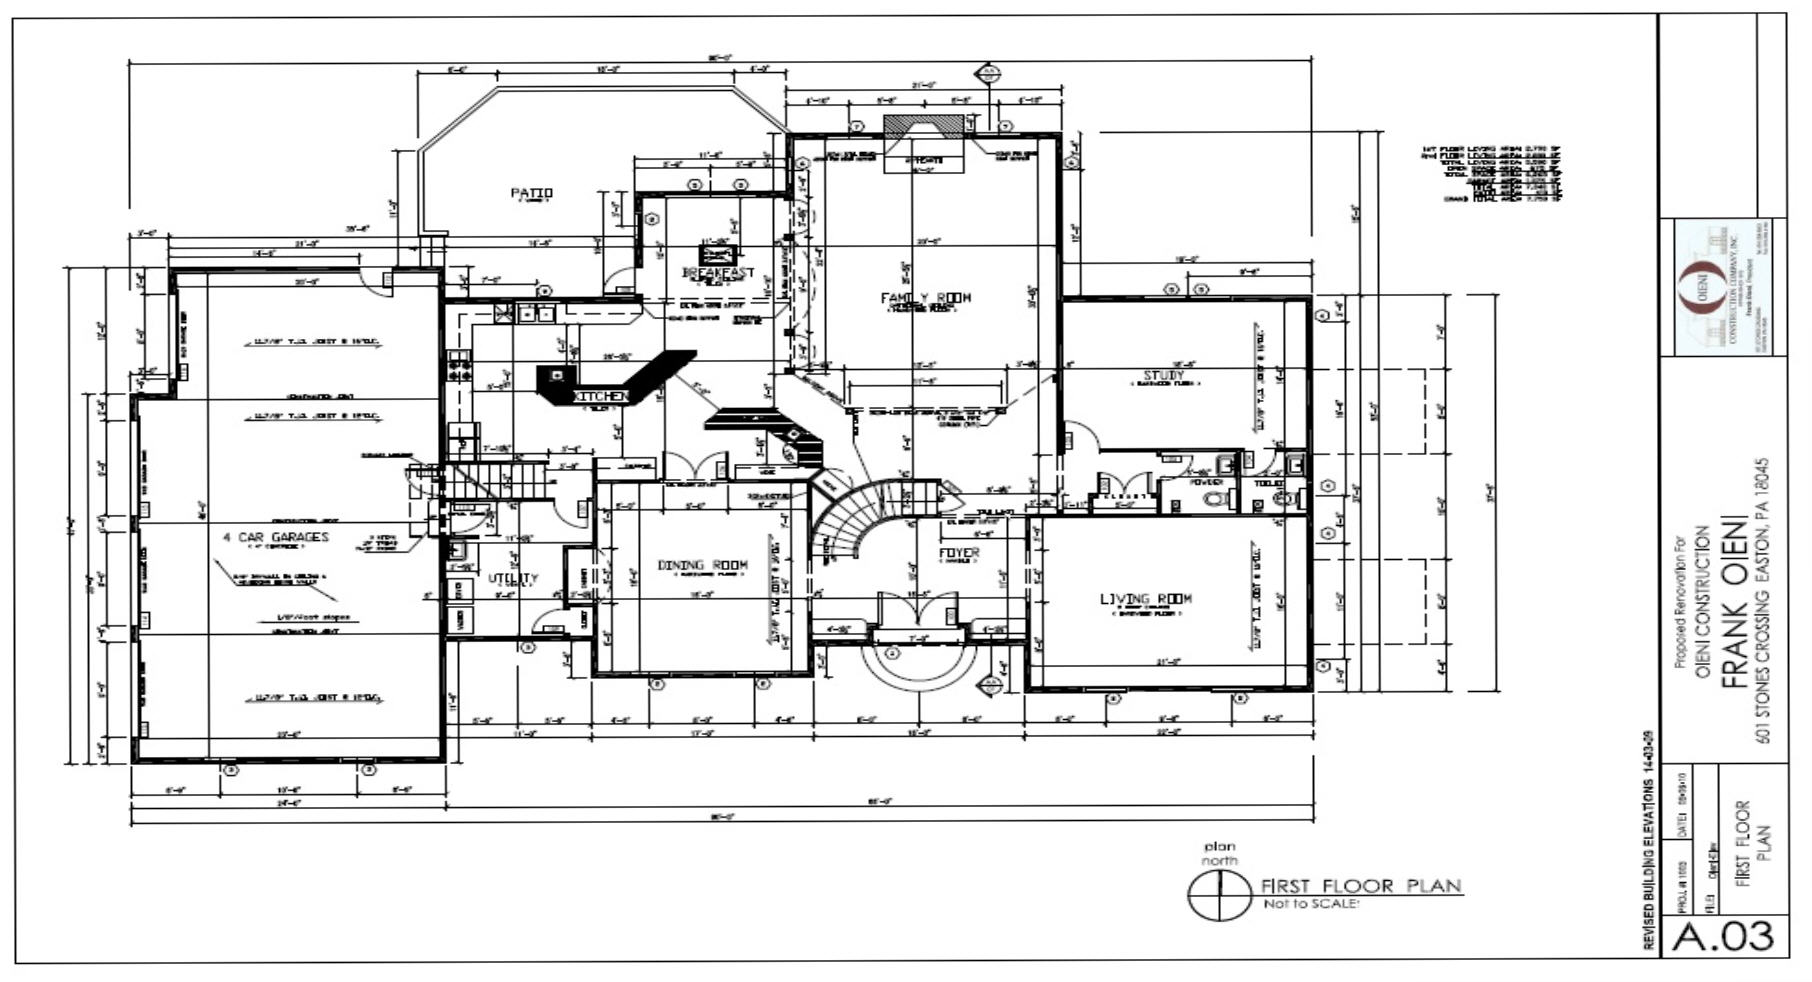 Oieni construction brodhead floor plans for Floorplan com